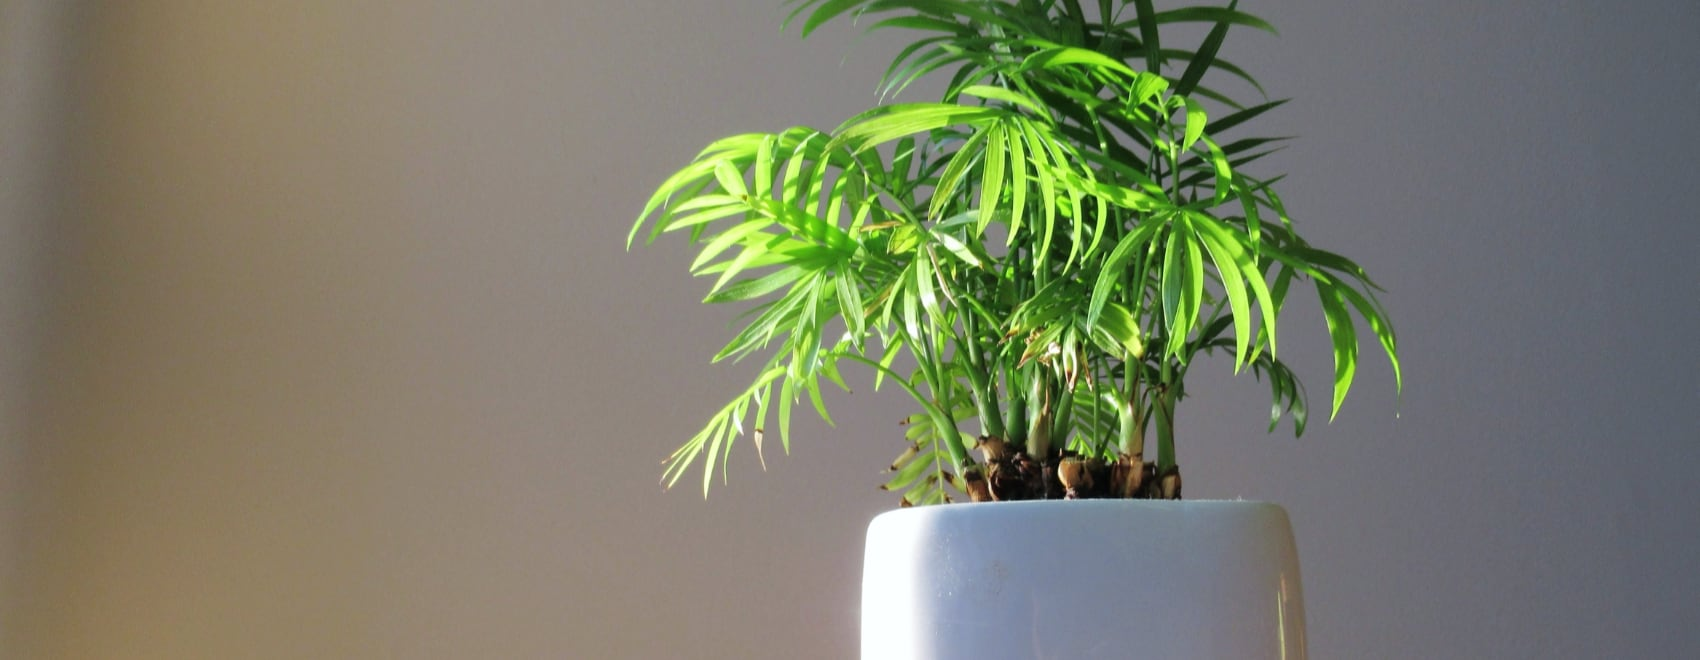 Bamboo Plants 101 How To Grow Happy Bamboo Plants Indoors